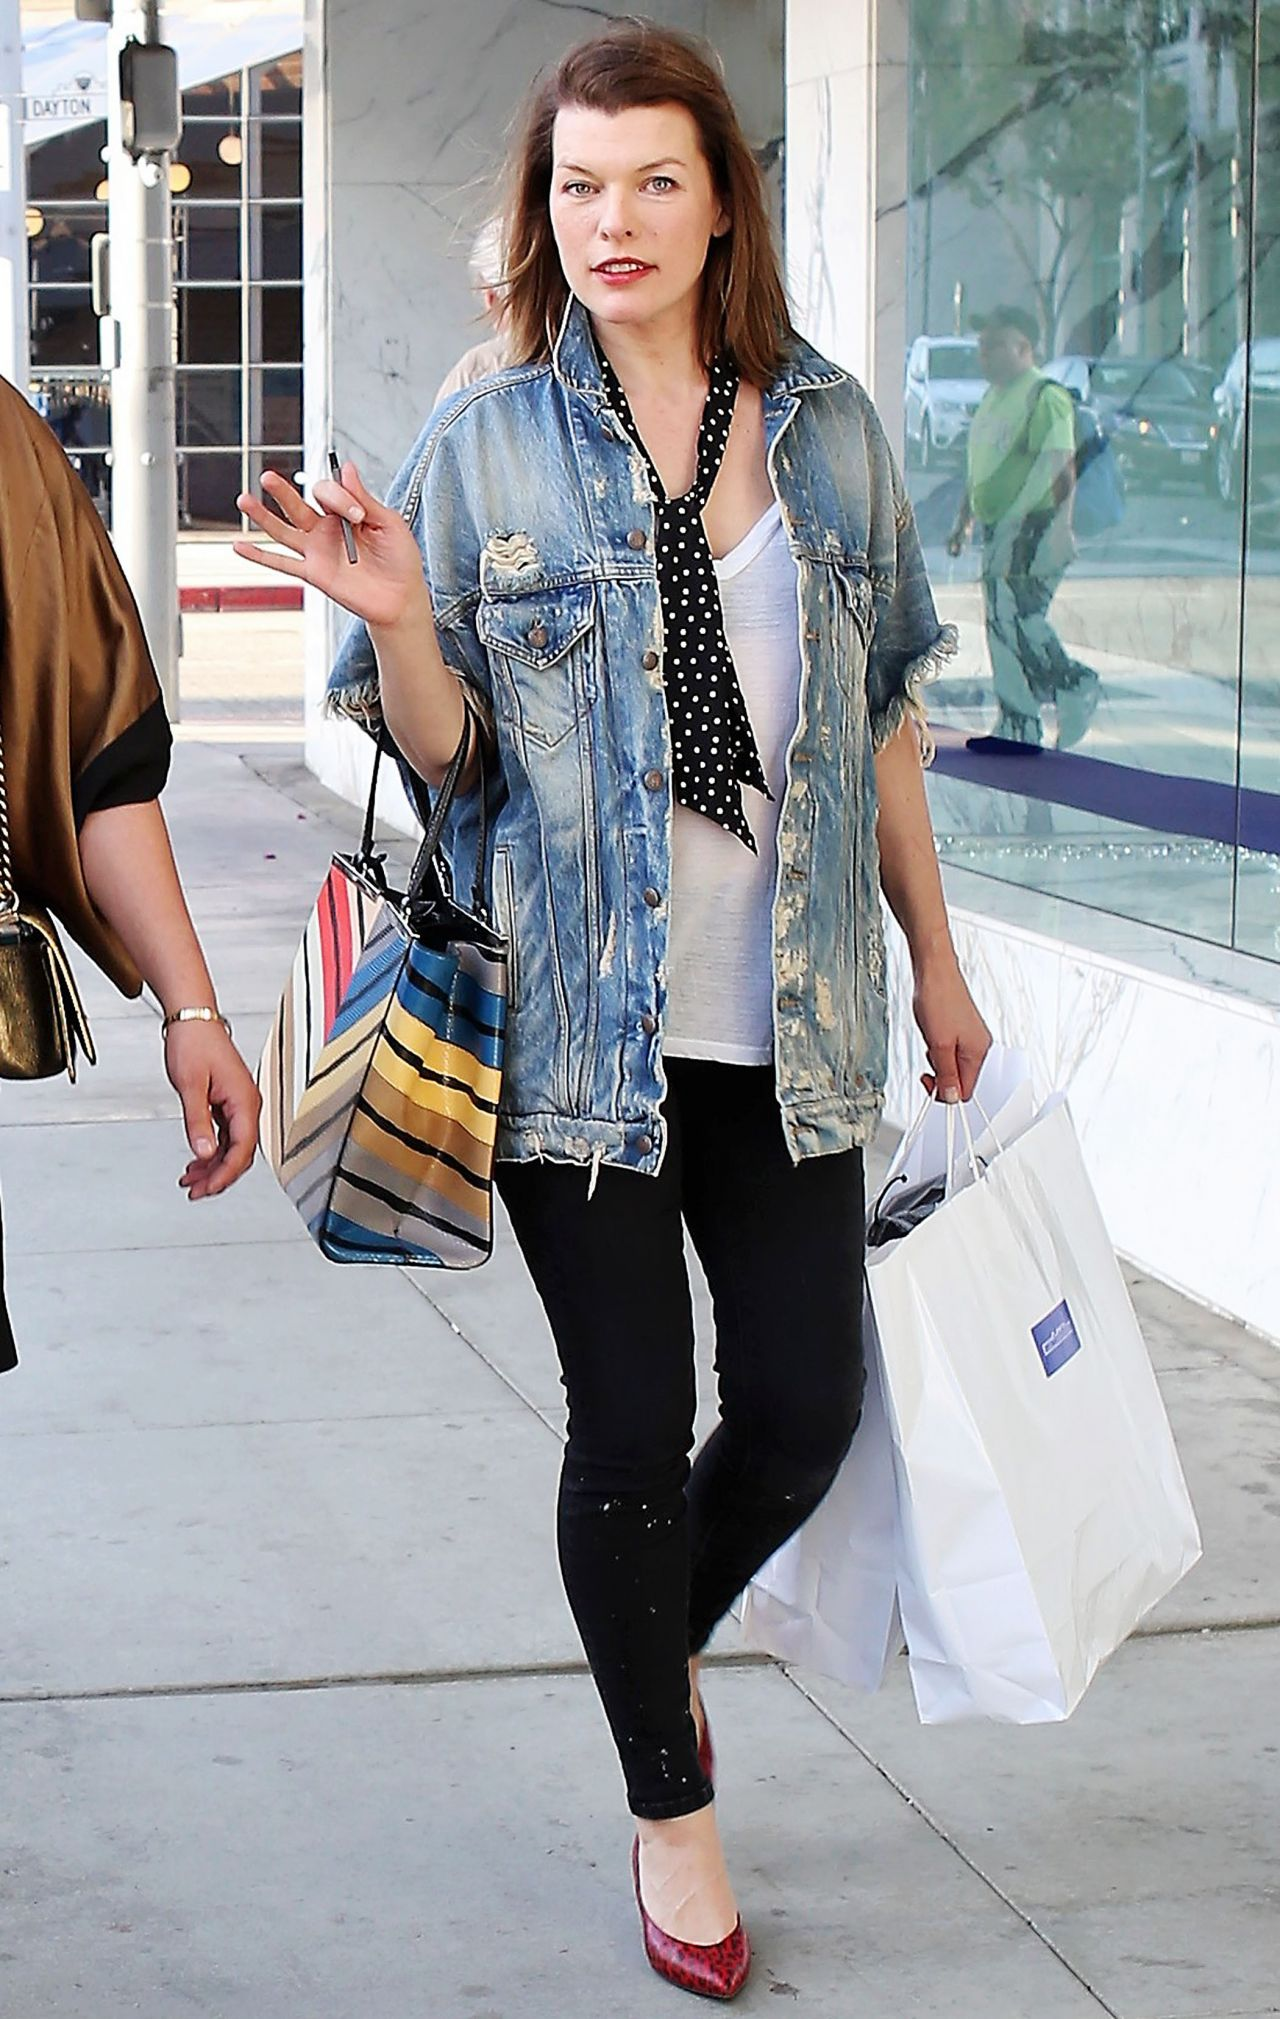 Milla Jovovich in Casual Outfit Out in Beverly Hills милла йовович